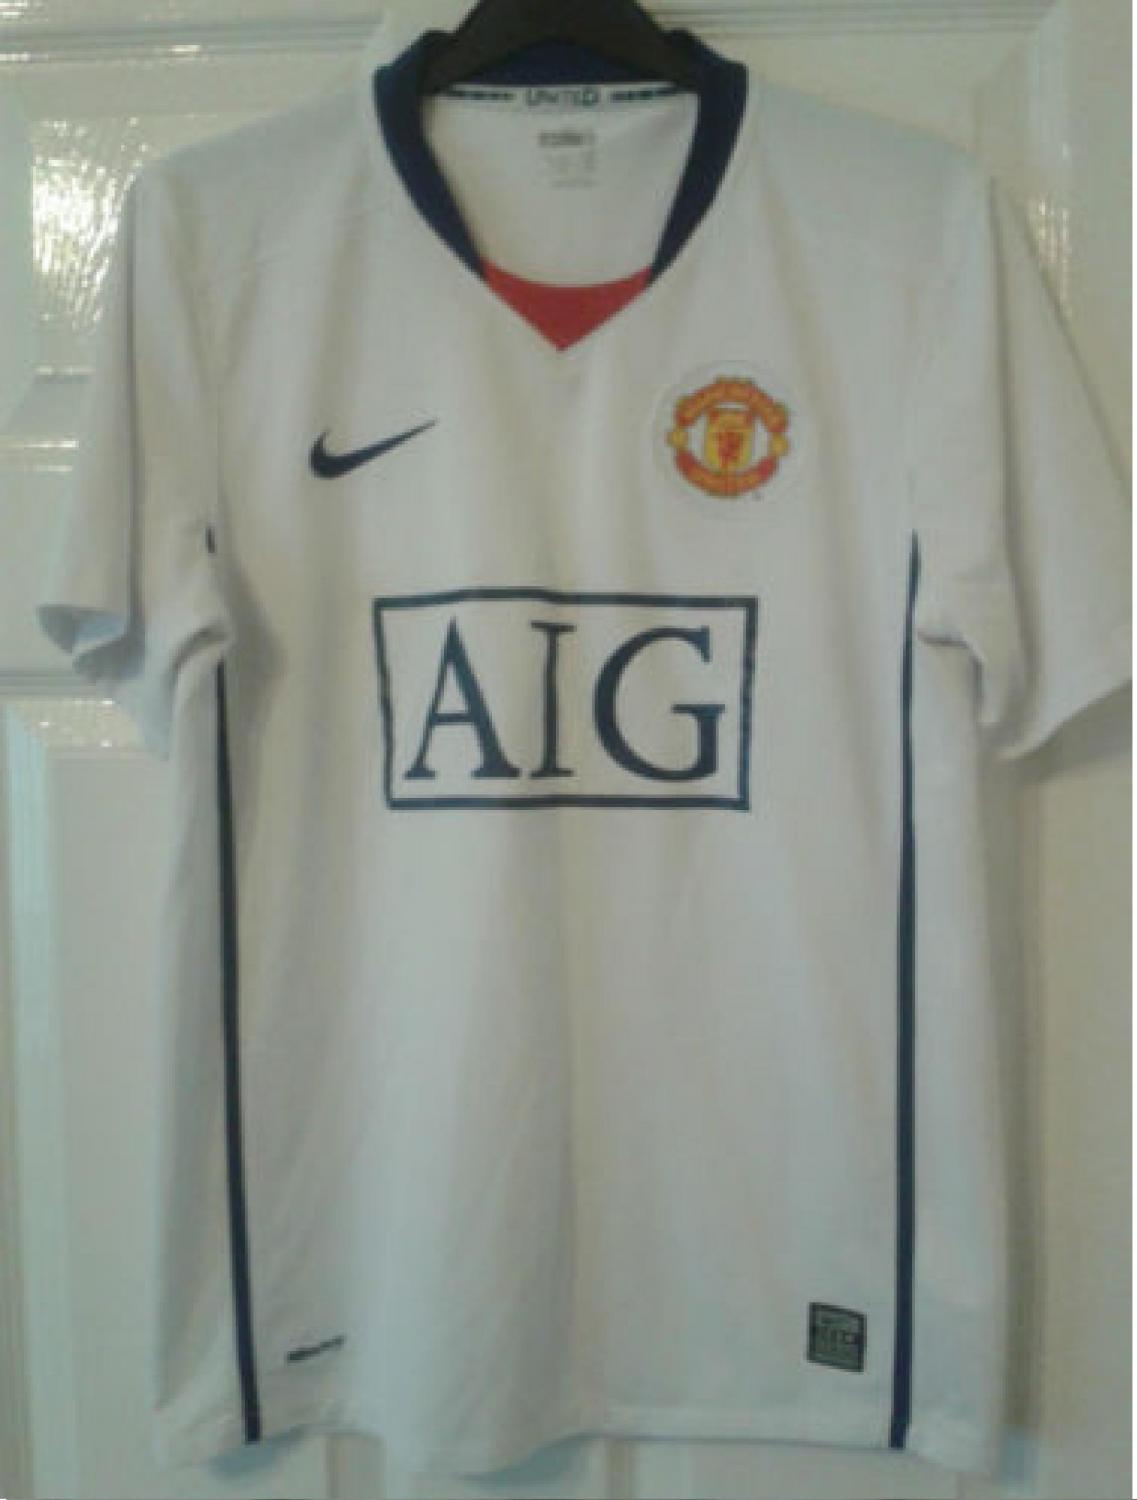 manchester united away football shirt 2008 2009 sponsored by aig manchester united away football shirt